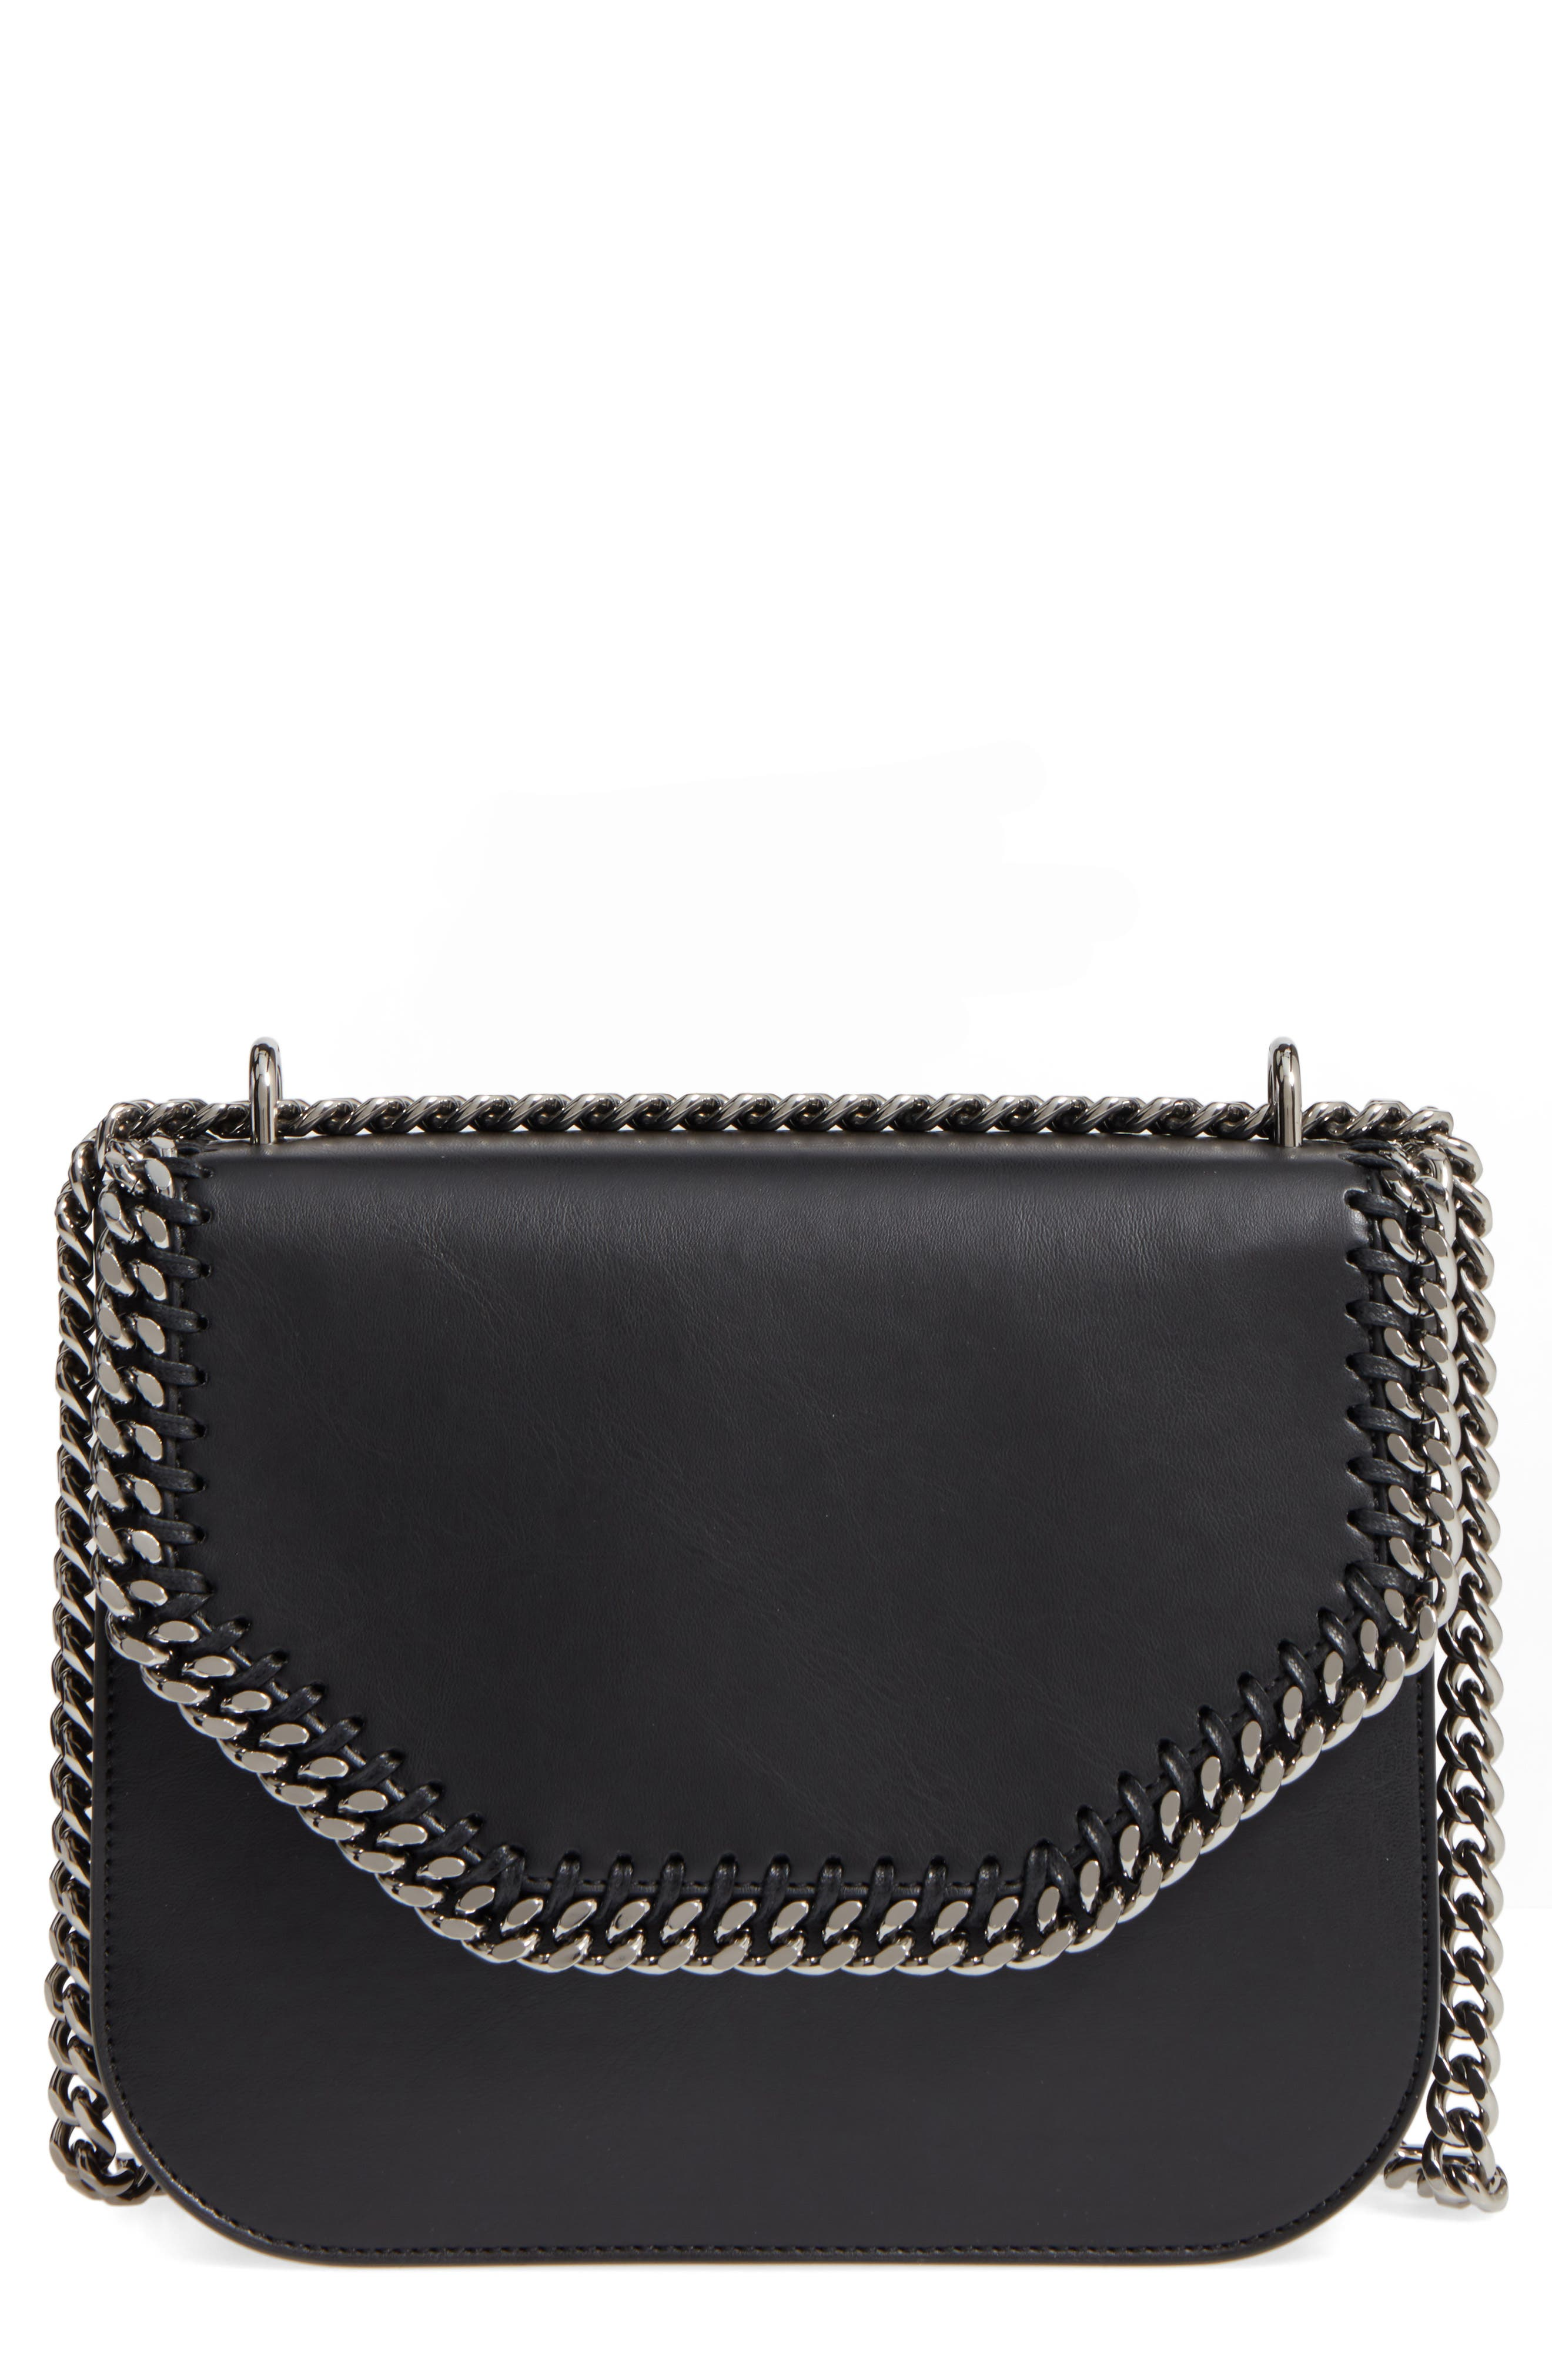 Alternate Image 1 Selected - Stella McCartney Falabella Box Faux Leather Crossbody Bag